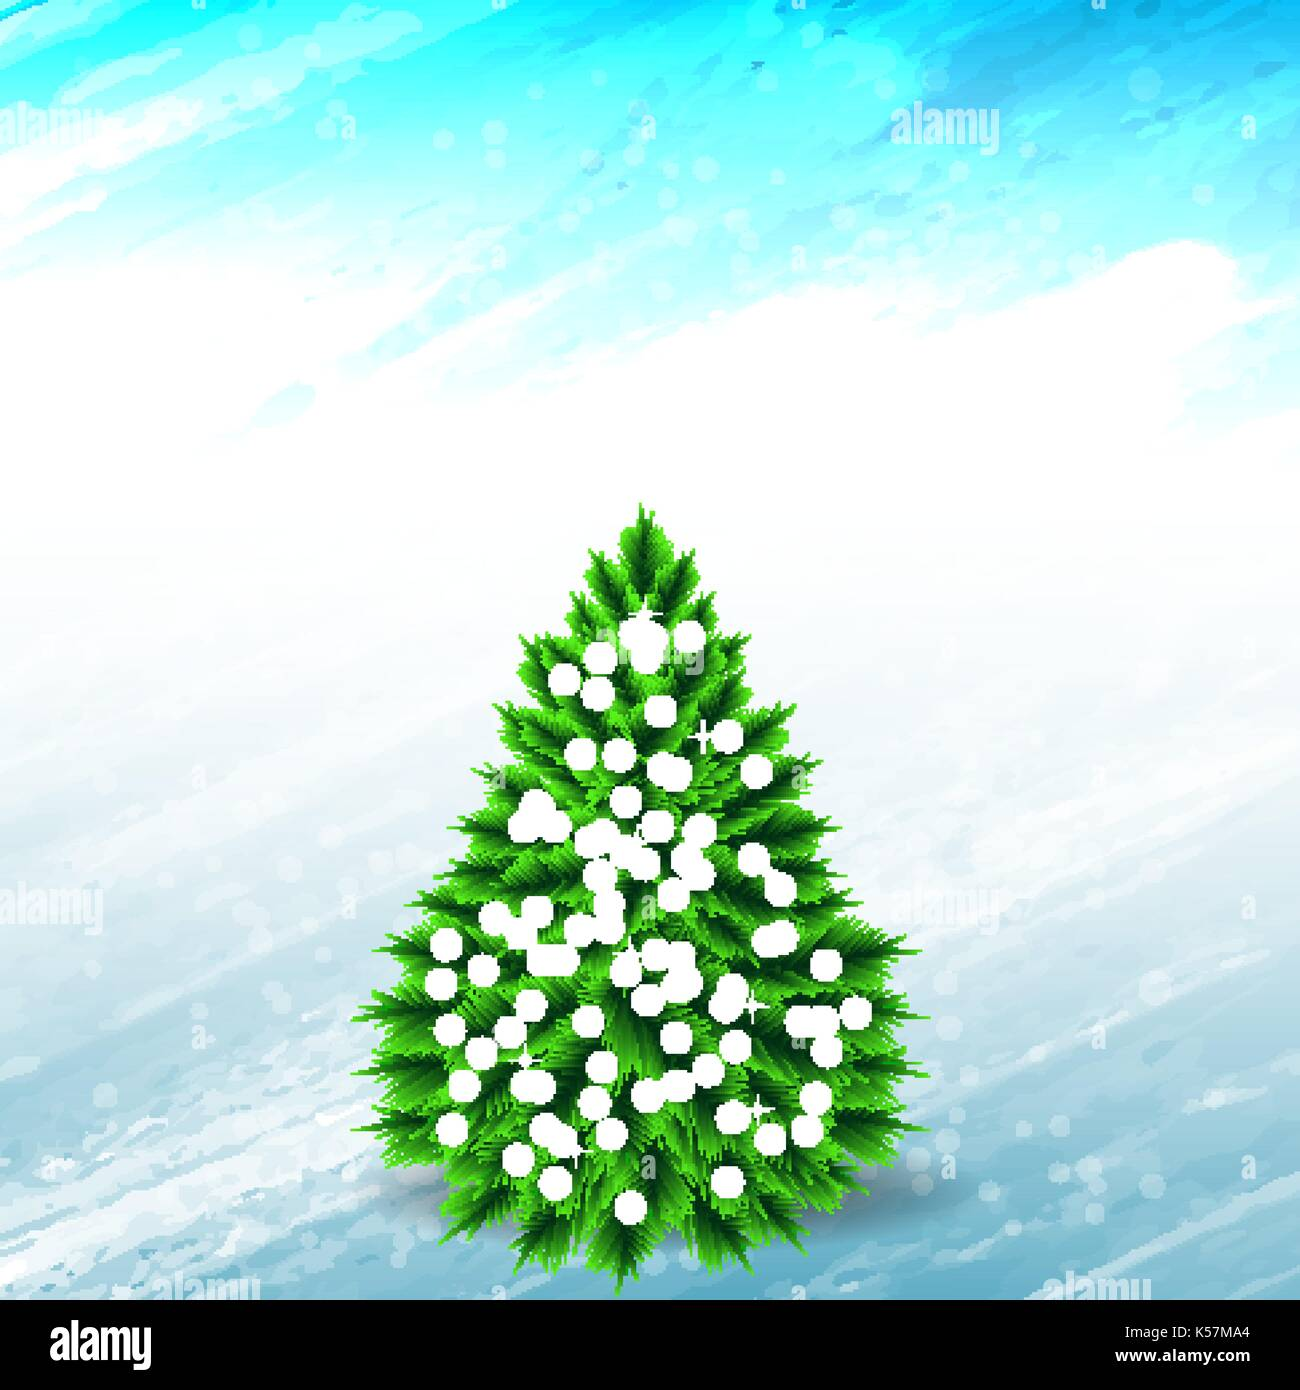 Abstract Christmas background. - Stock Vector